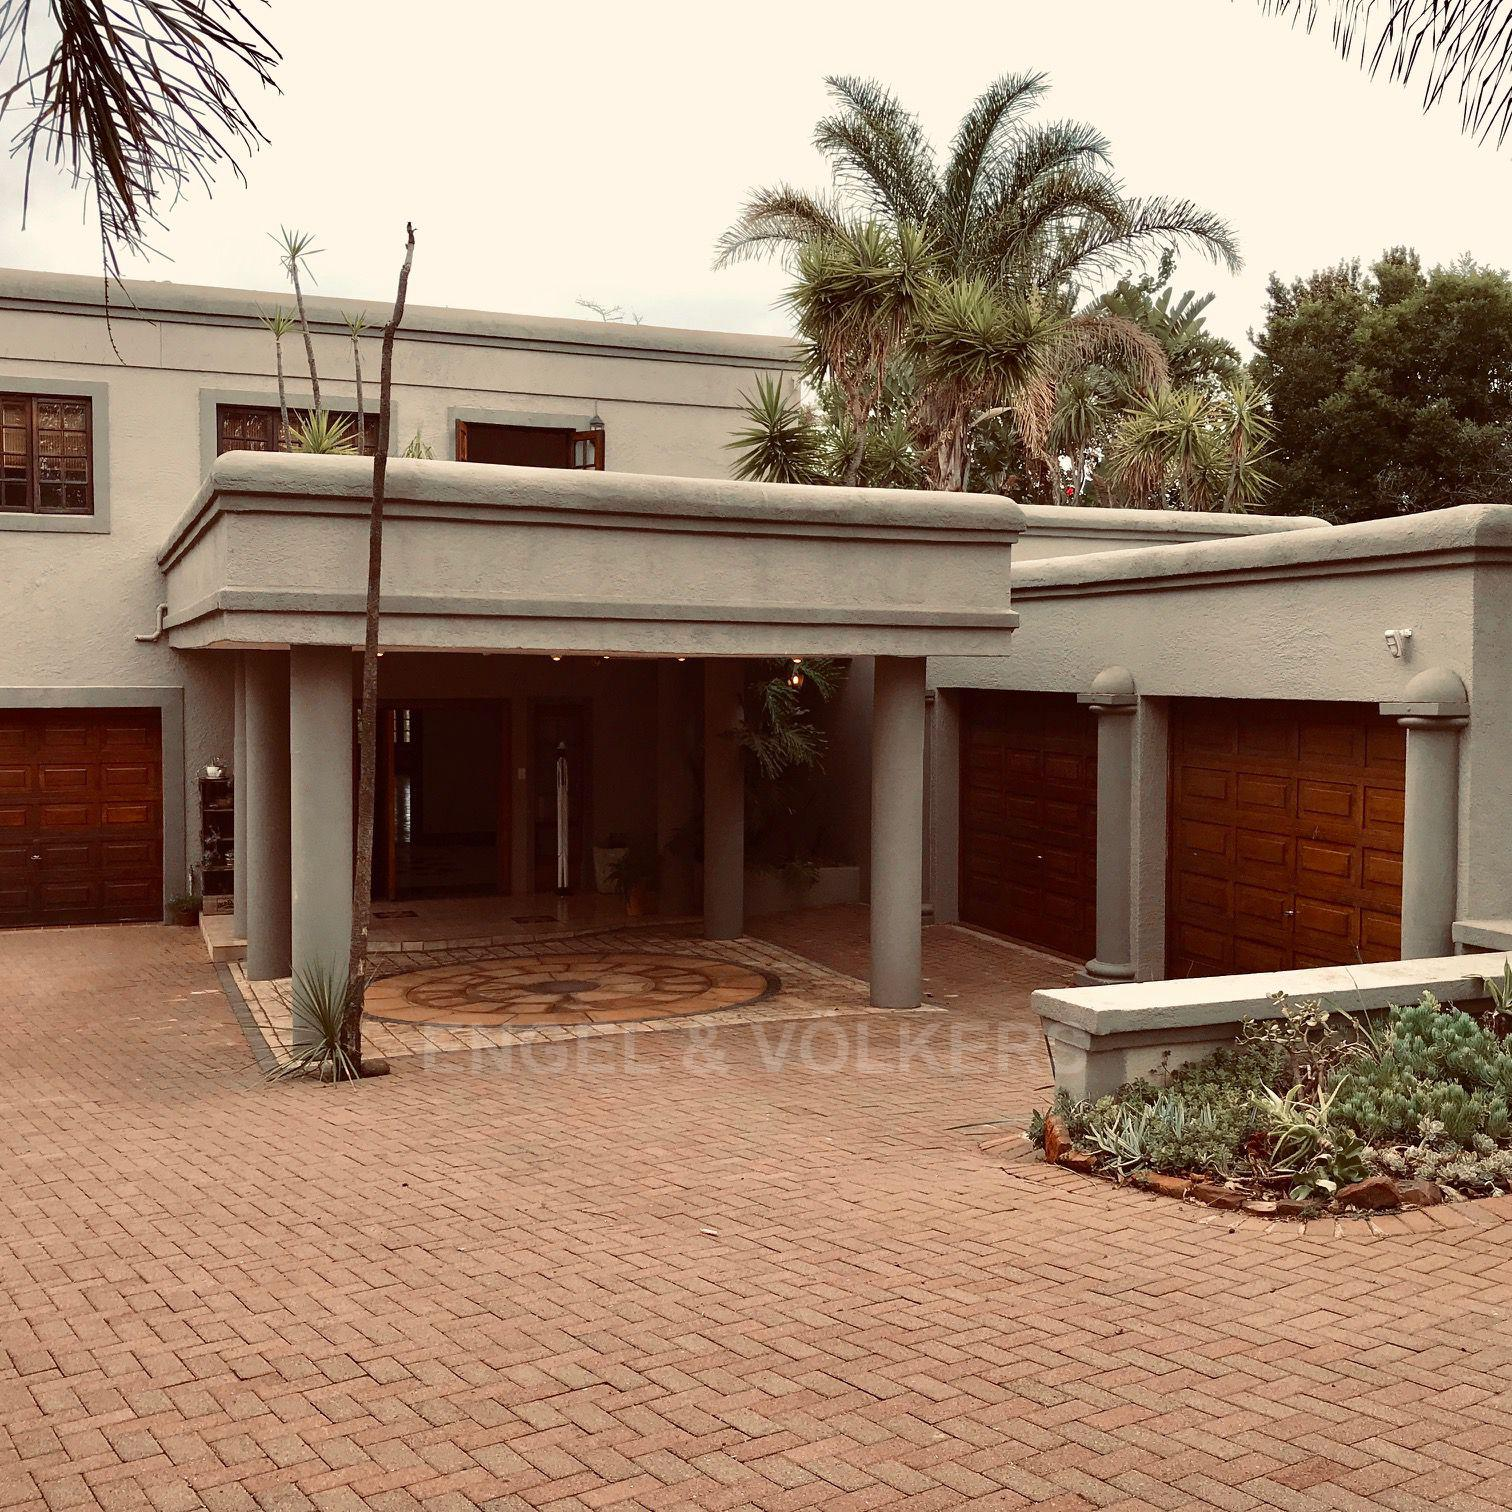 Property and Houses for sale in Erasmusrand, House, 4 Bedrooms - ZAR 4,500,000